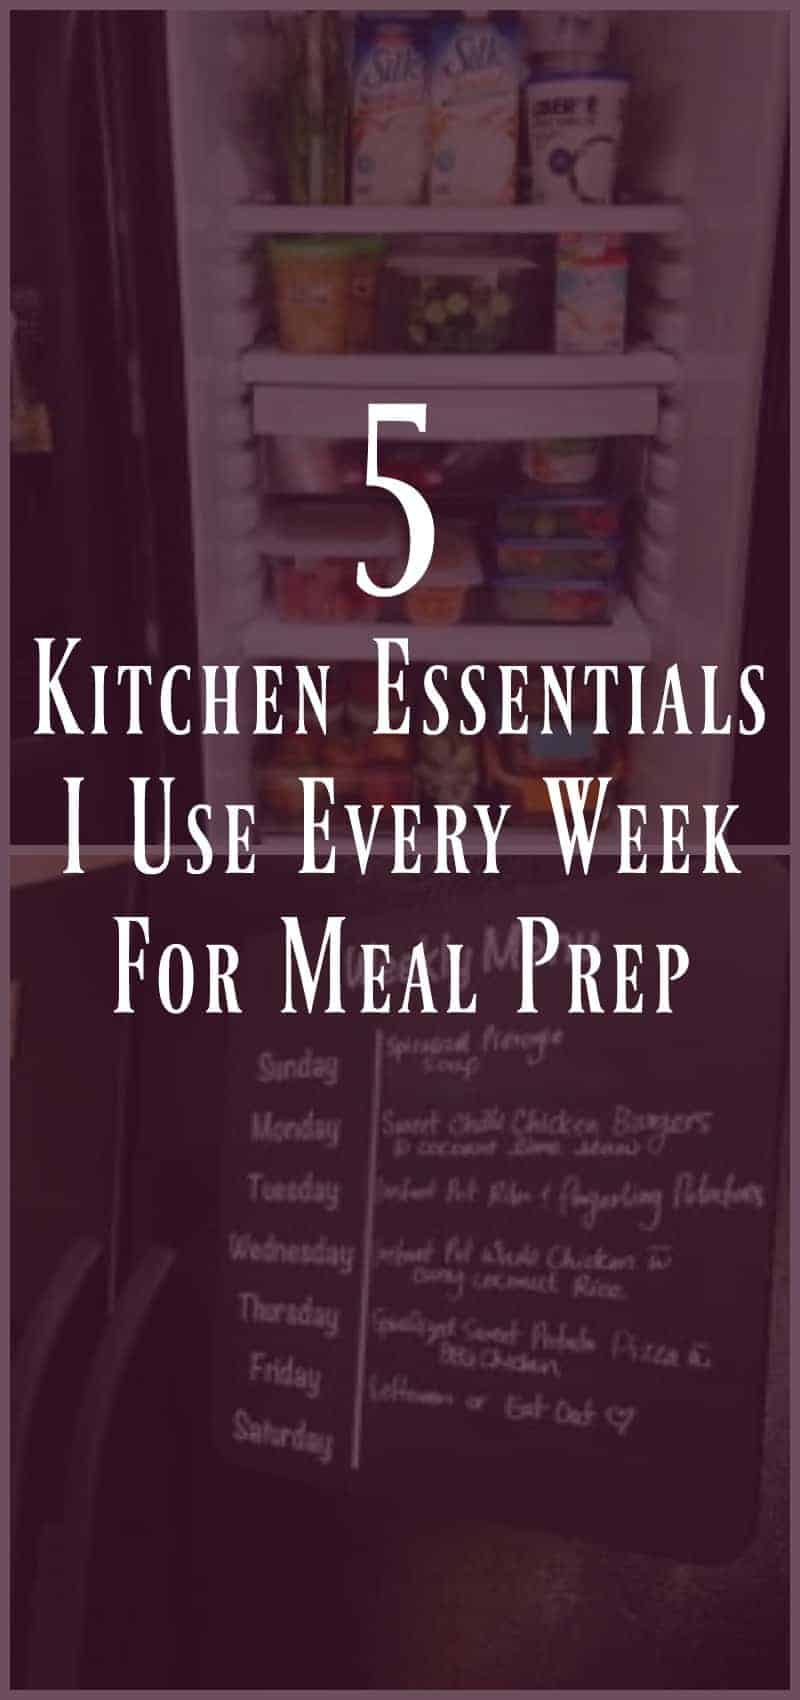 5 Kitchen Essentials I Use Every Week For Meal Prep